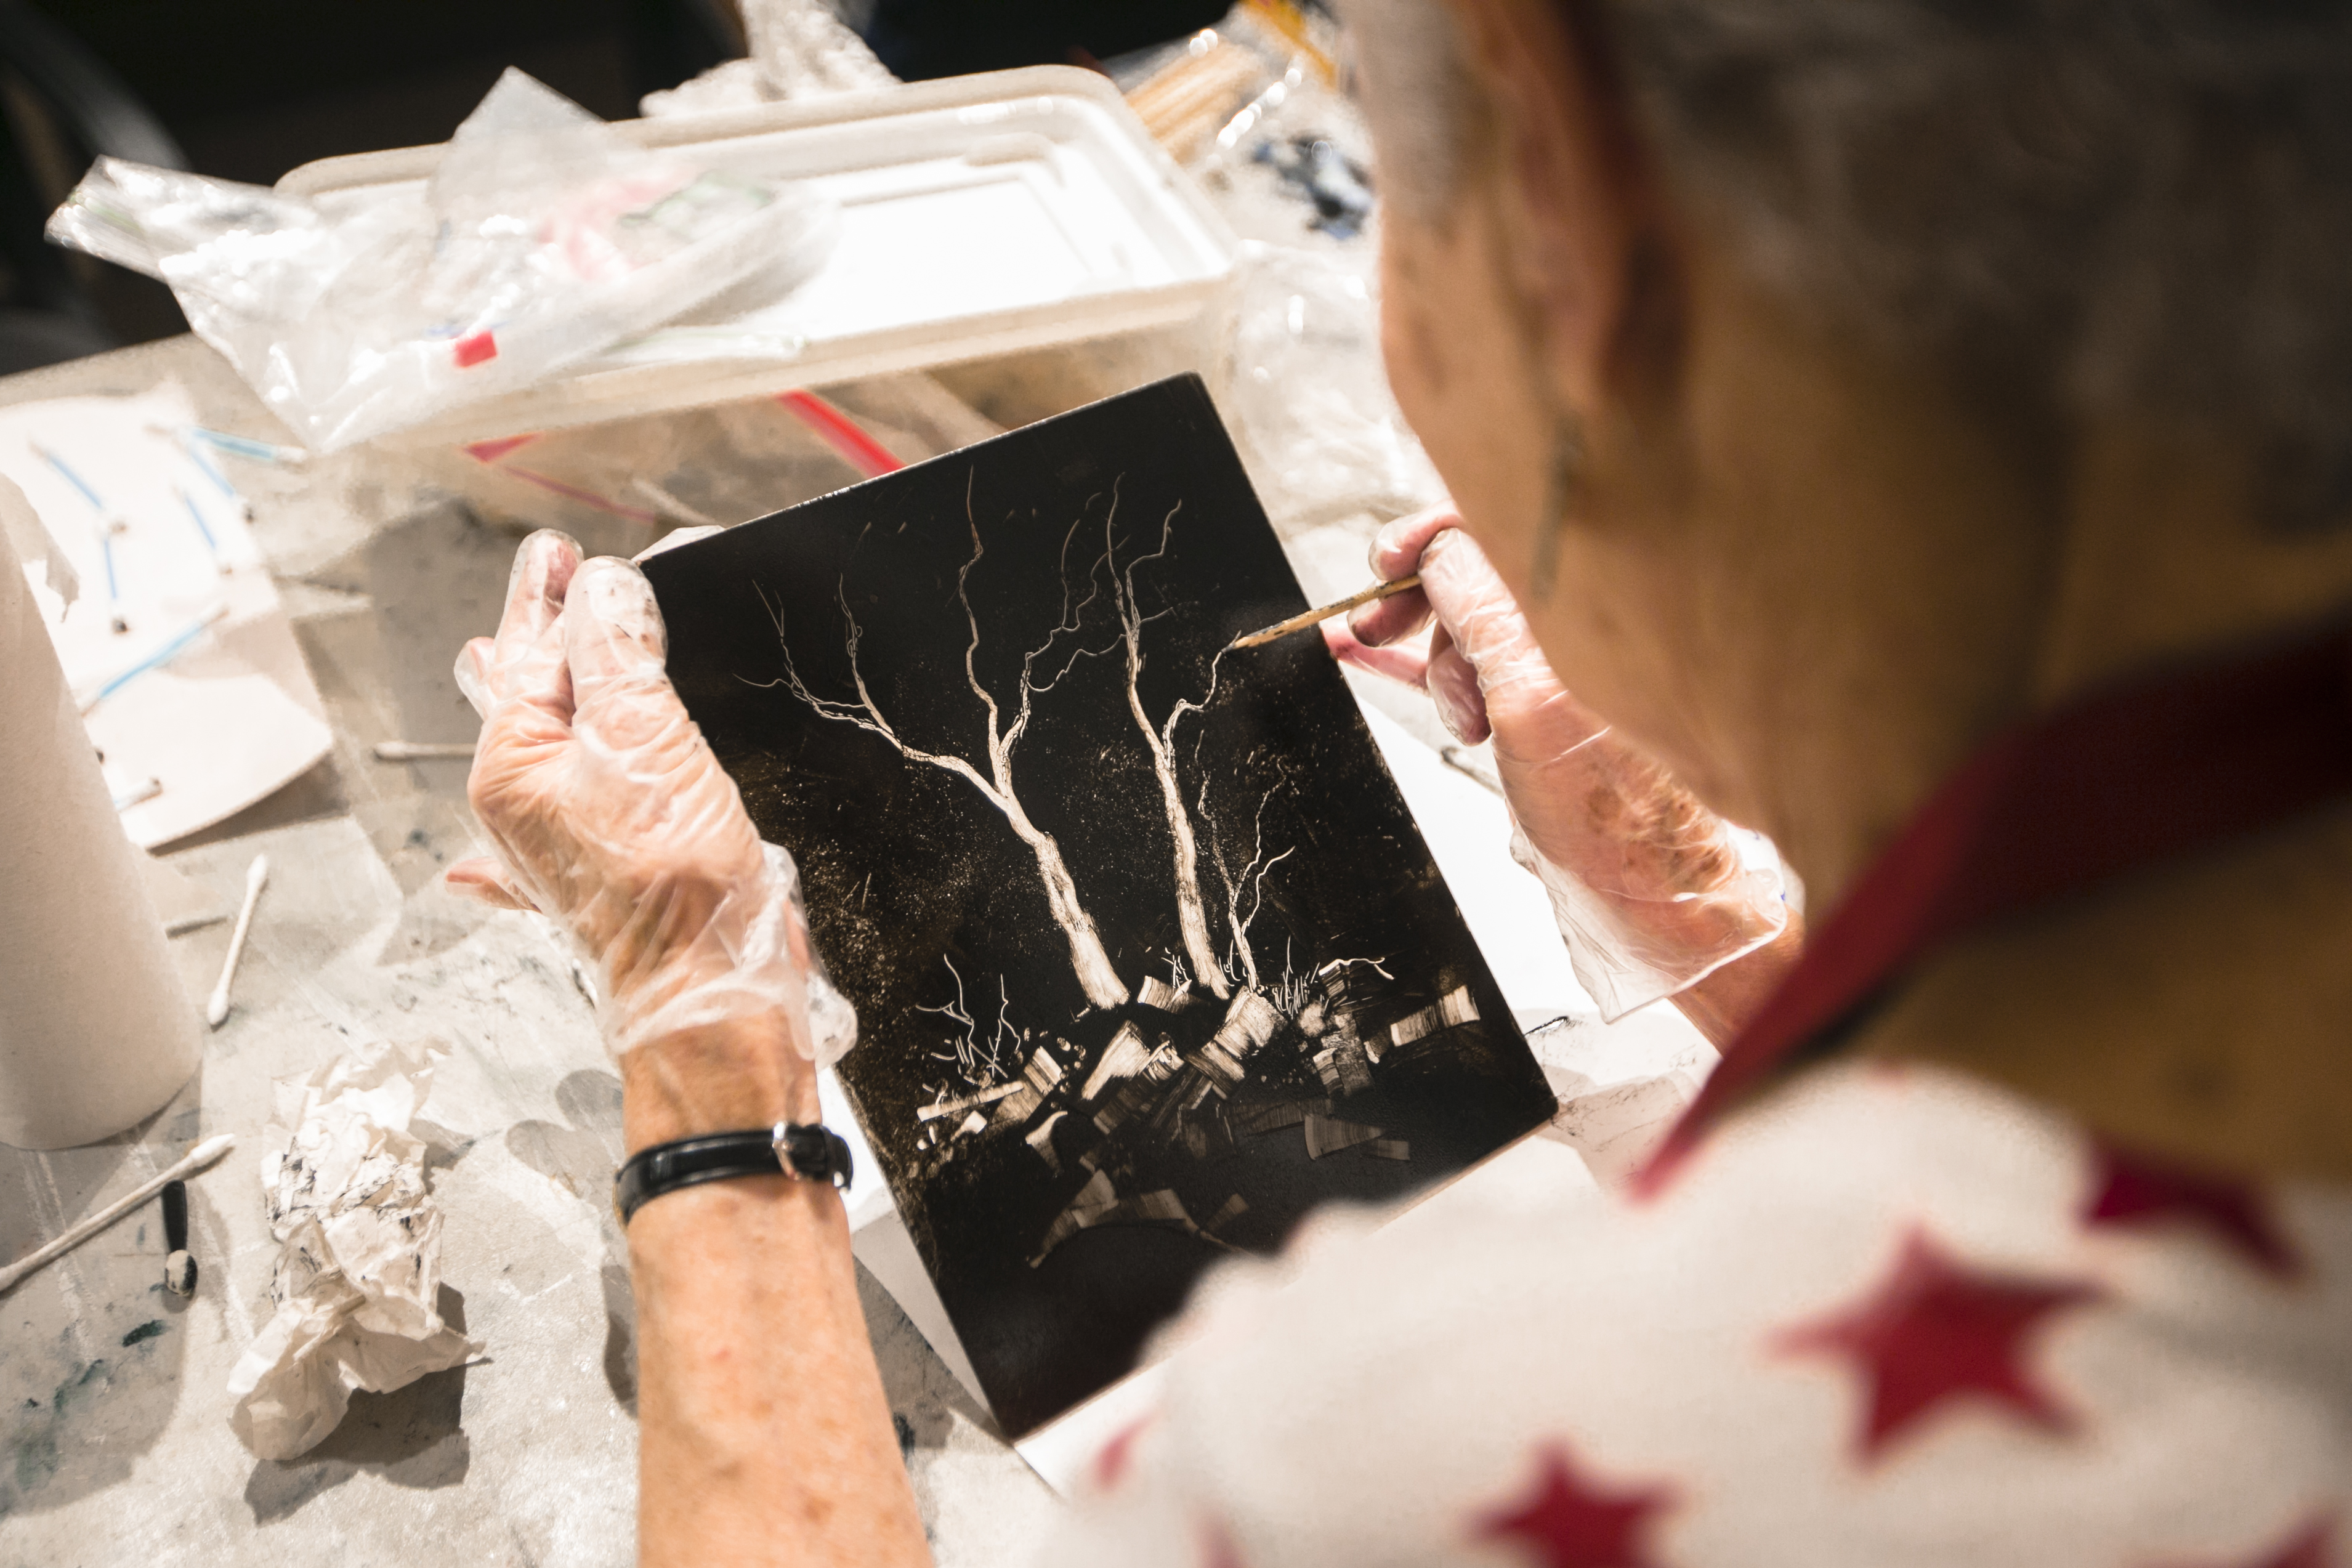 A woman draws on a plate to create a monotype at the Salmagundi Club on July 12, 2016. (Samira Bouaou/Epoch Times)